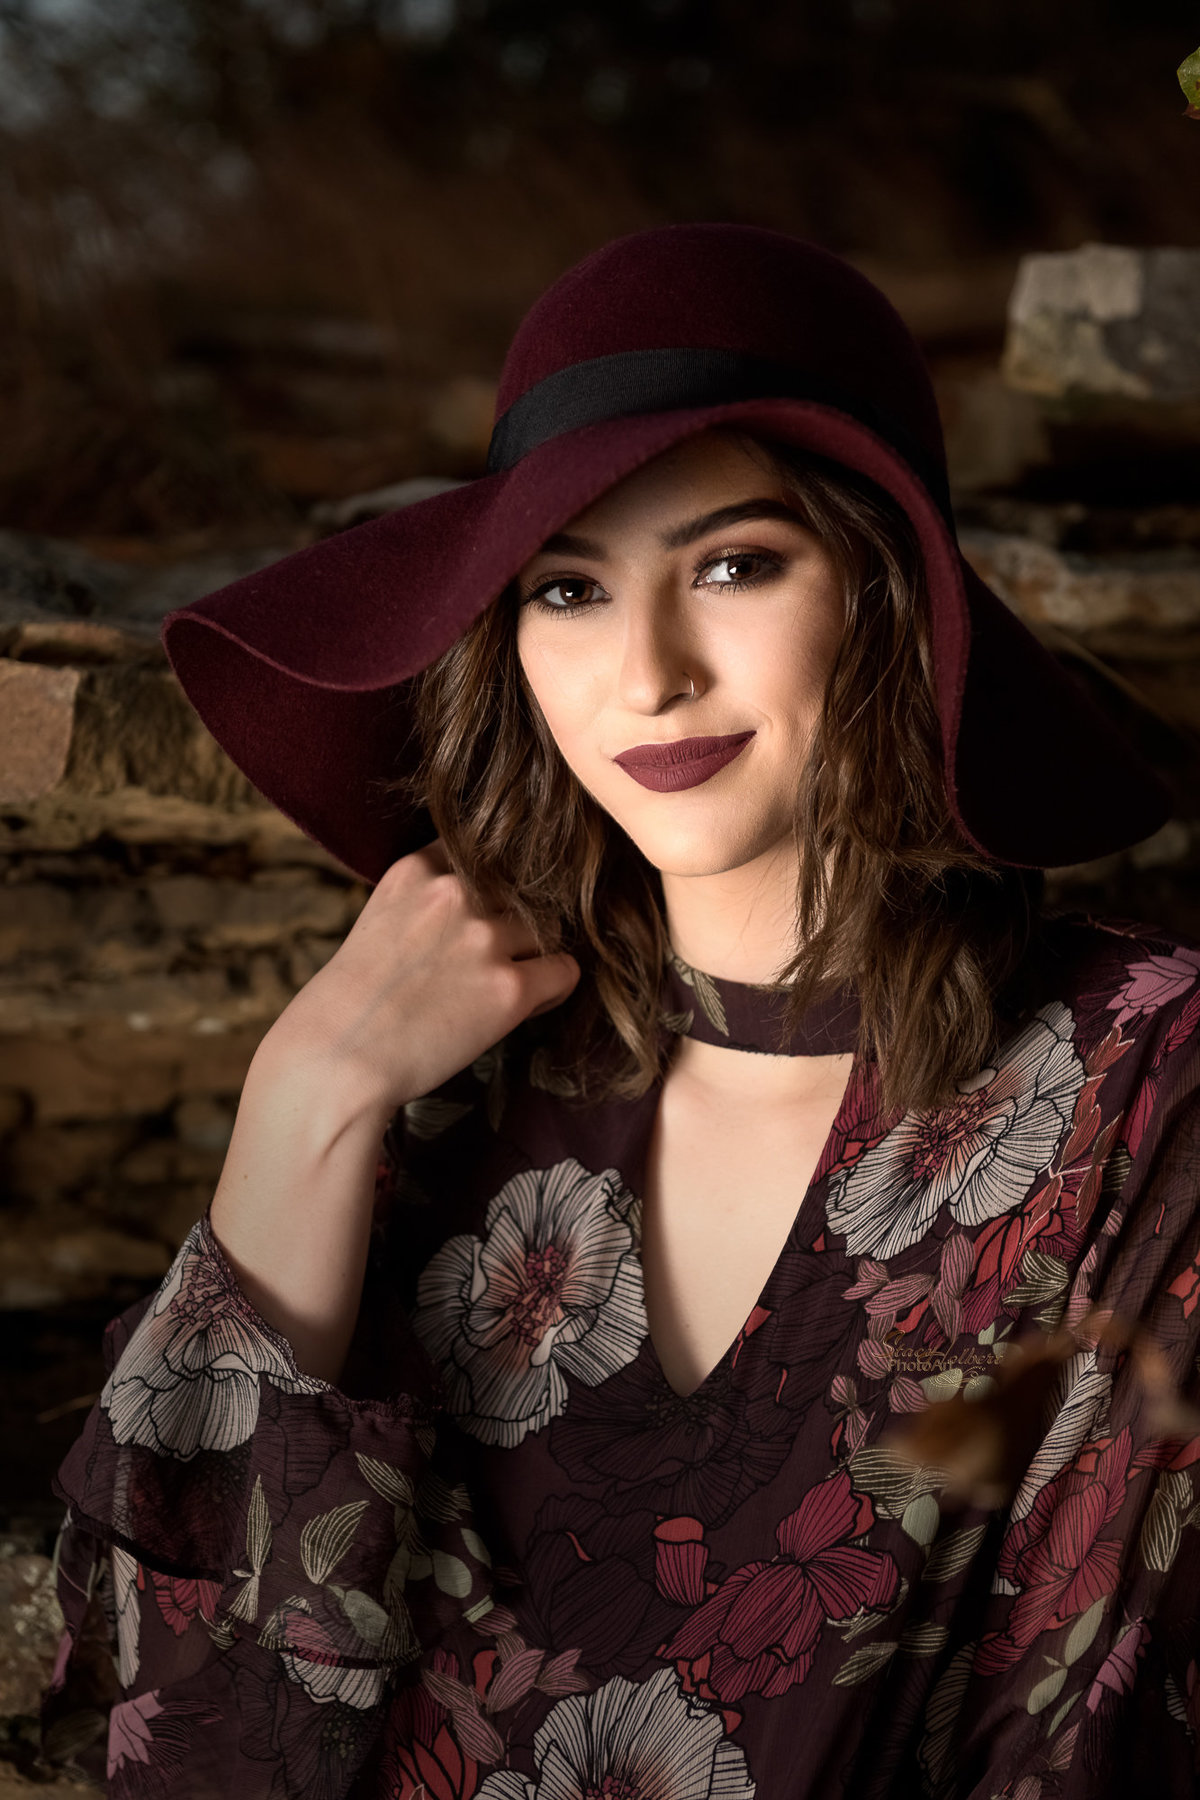 Senior Glamour with hat. Photo by Stacy Holbert, Booneville AR